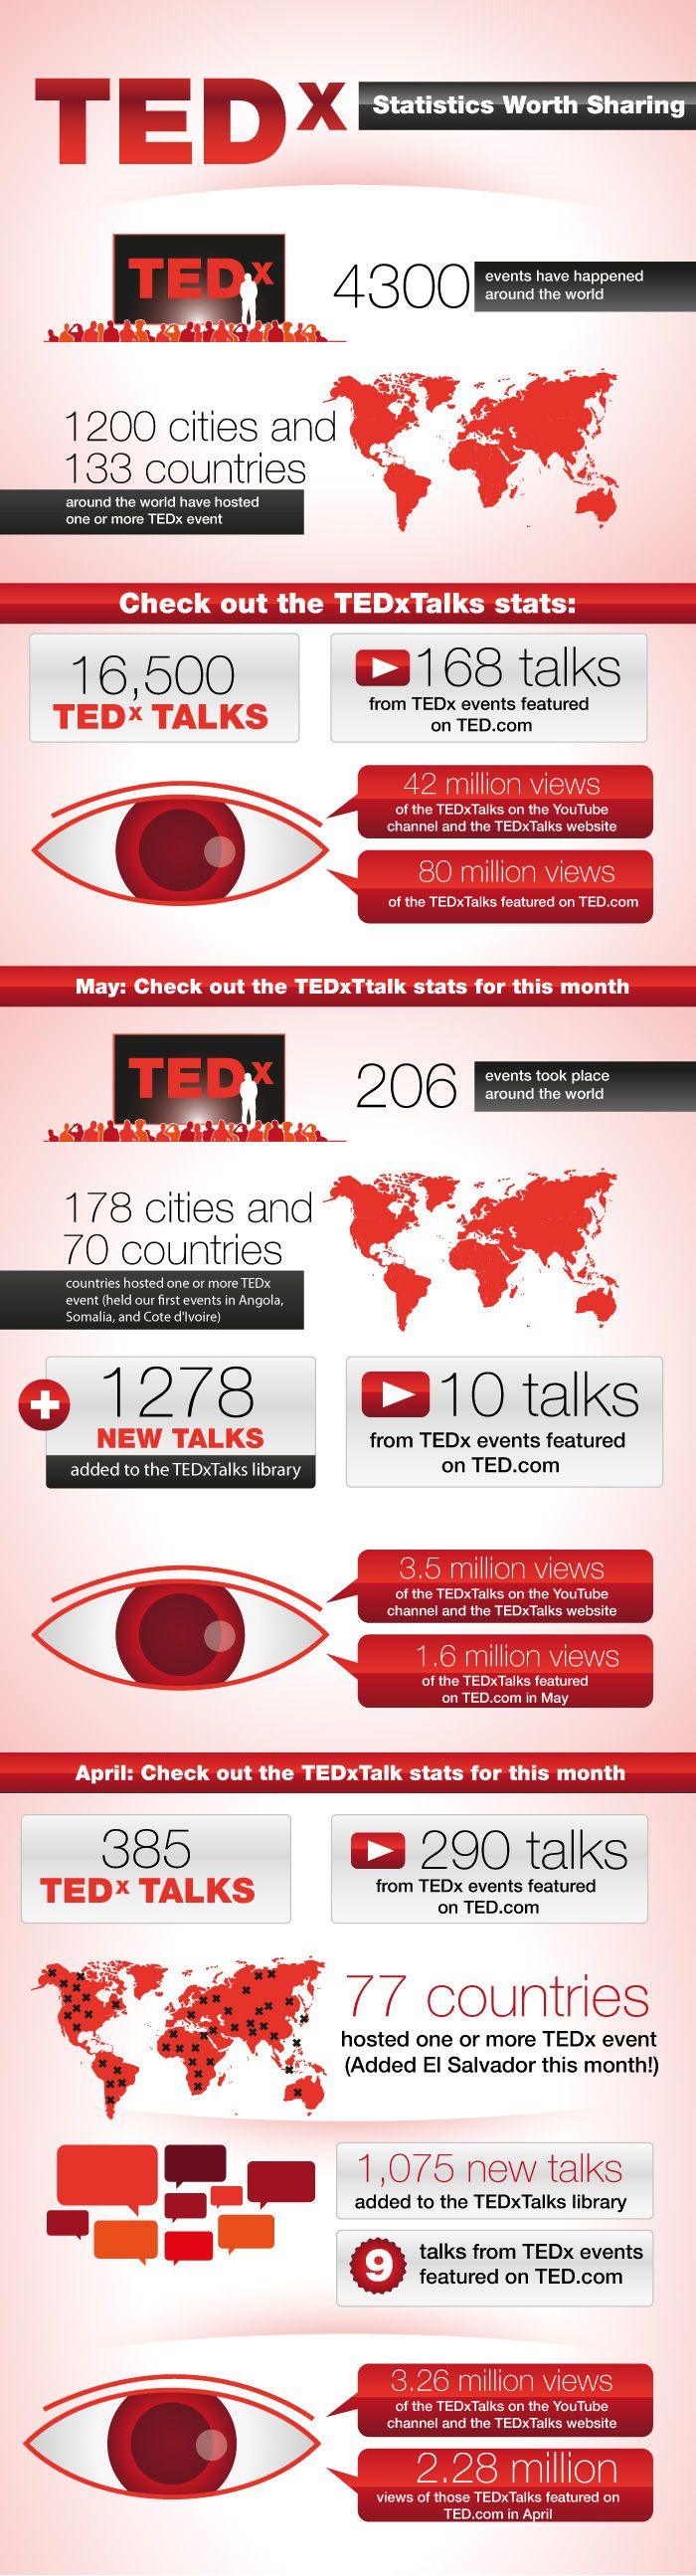 #TEDx Statistics Worth Sharing. #TED #infographic #TEDxSummit #videos: Idea, Ted Talks, Statistics Worth, Tedx Infographic, Infographics, Design, Tedx Statistics